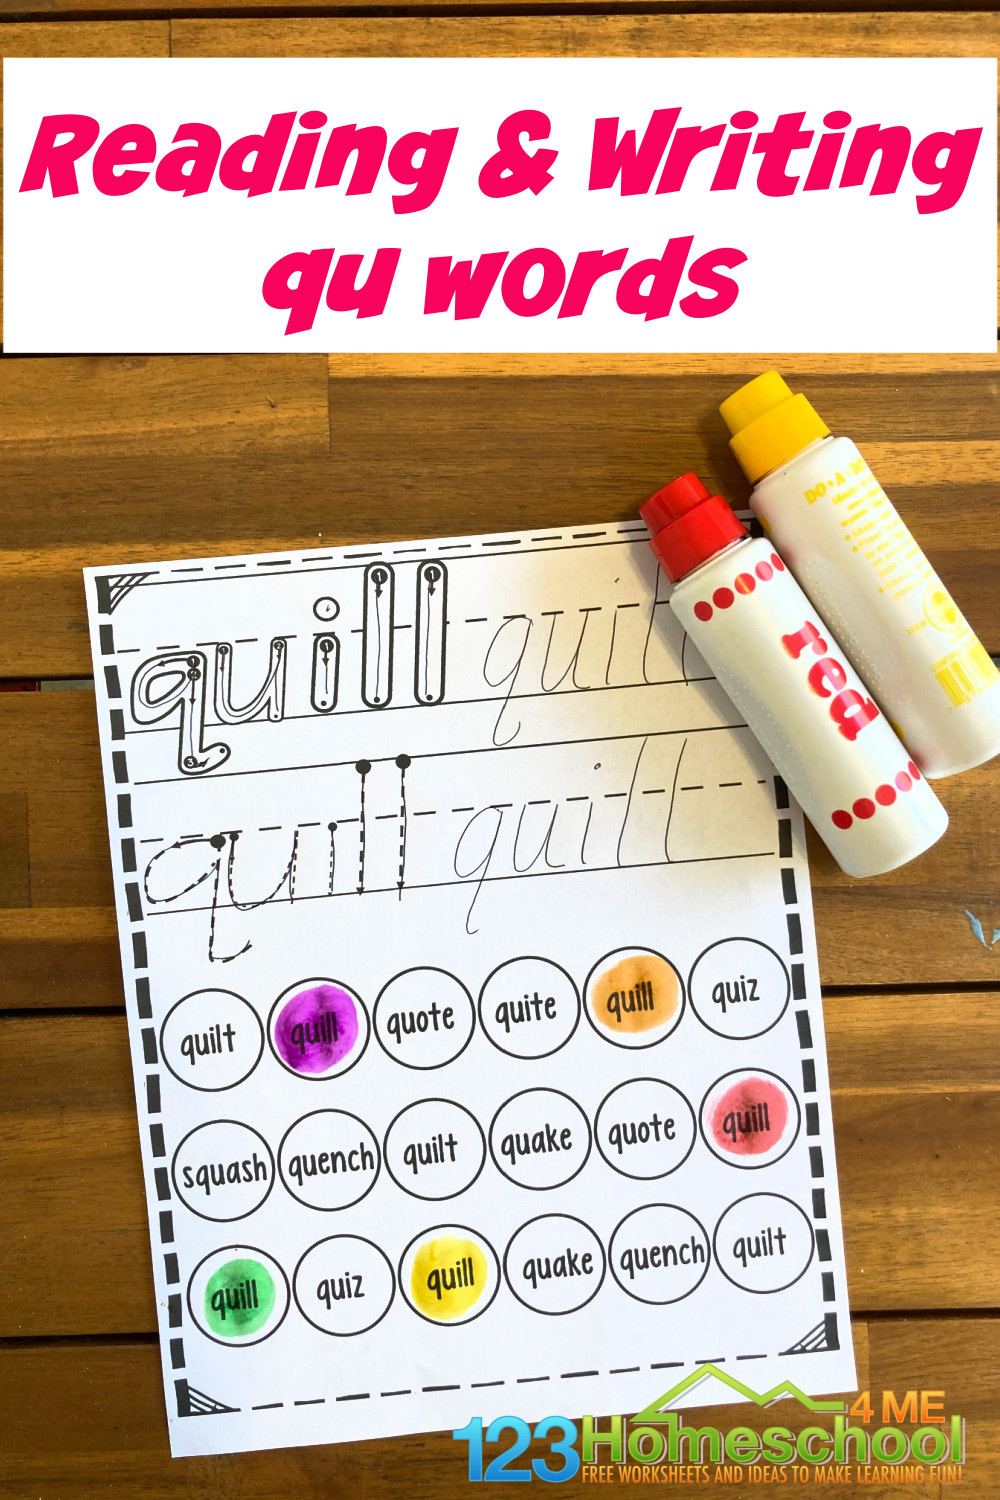 hight resolution of FREE Reading and Writing qu words